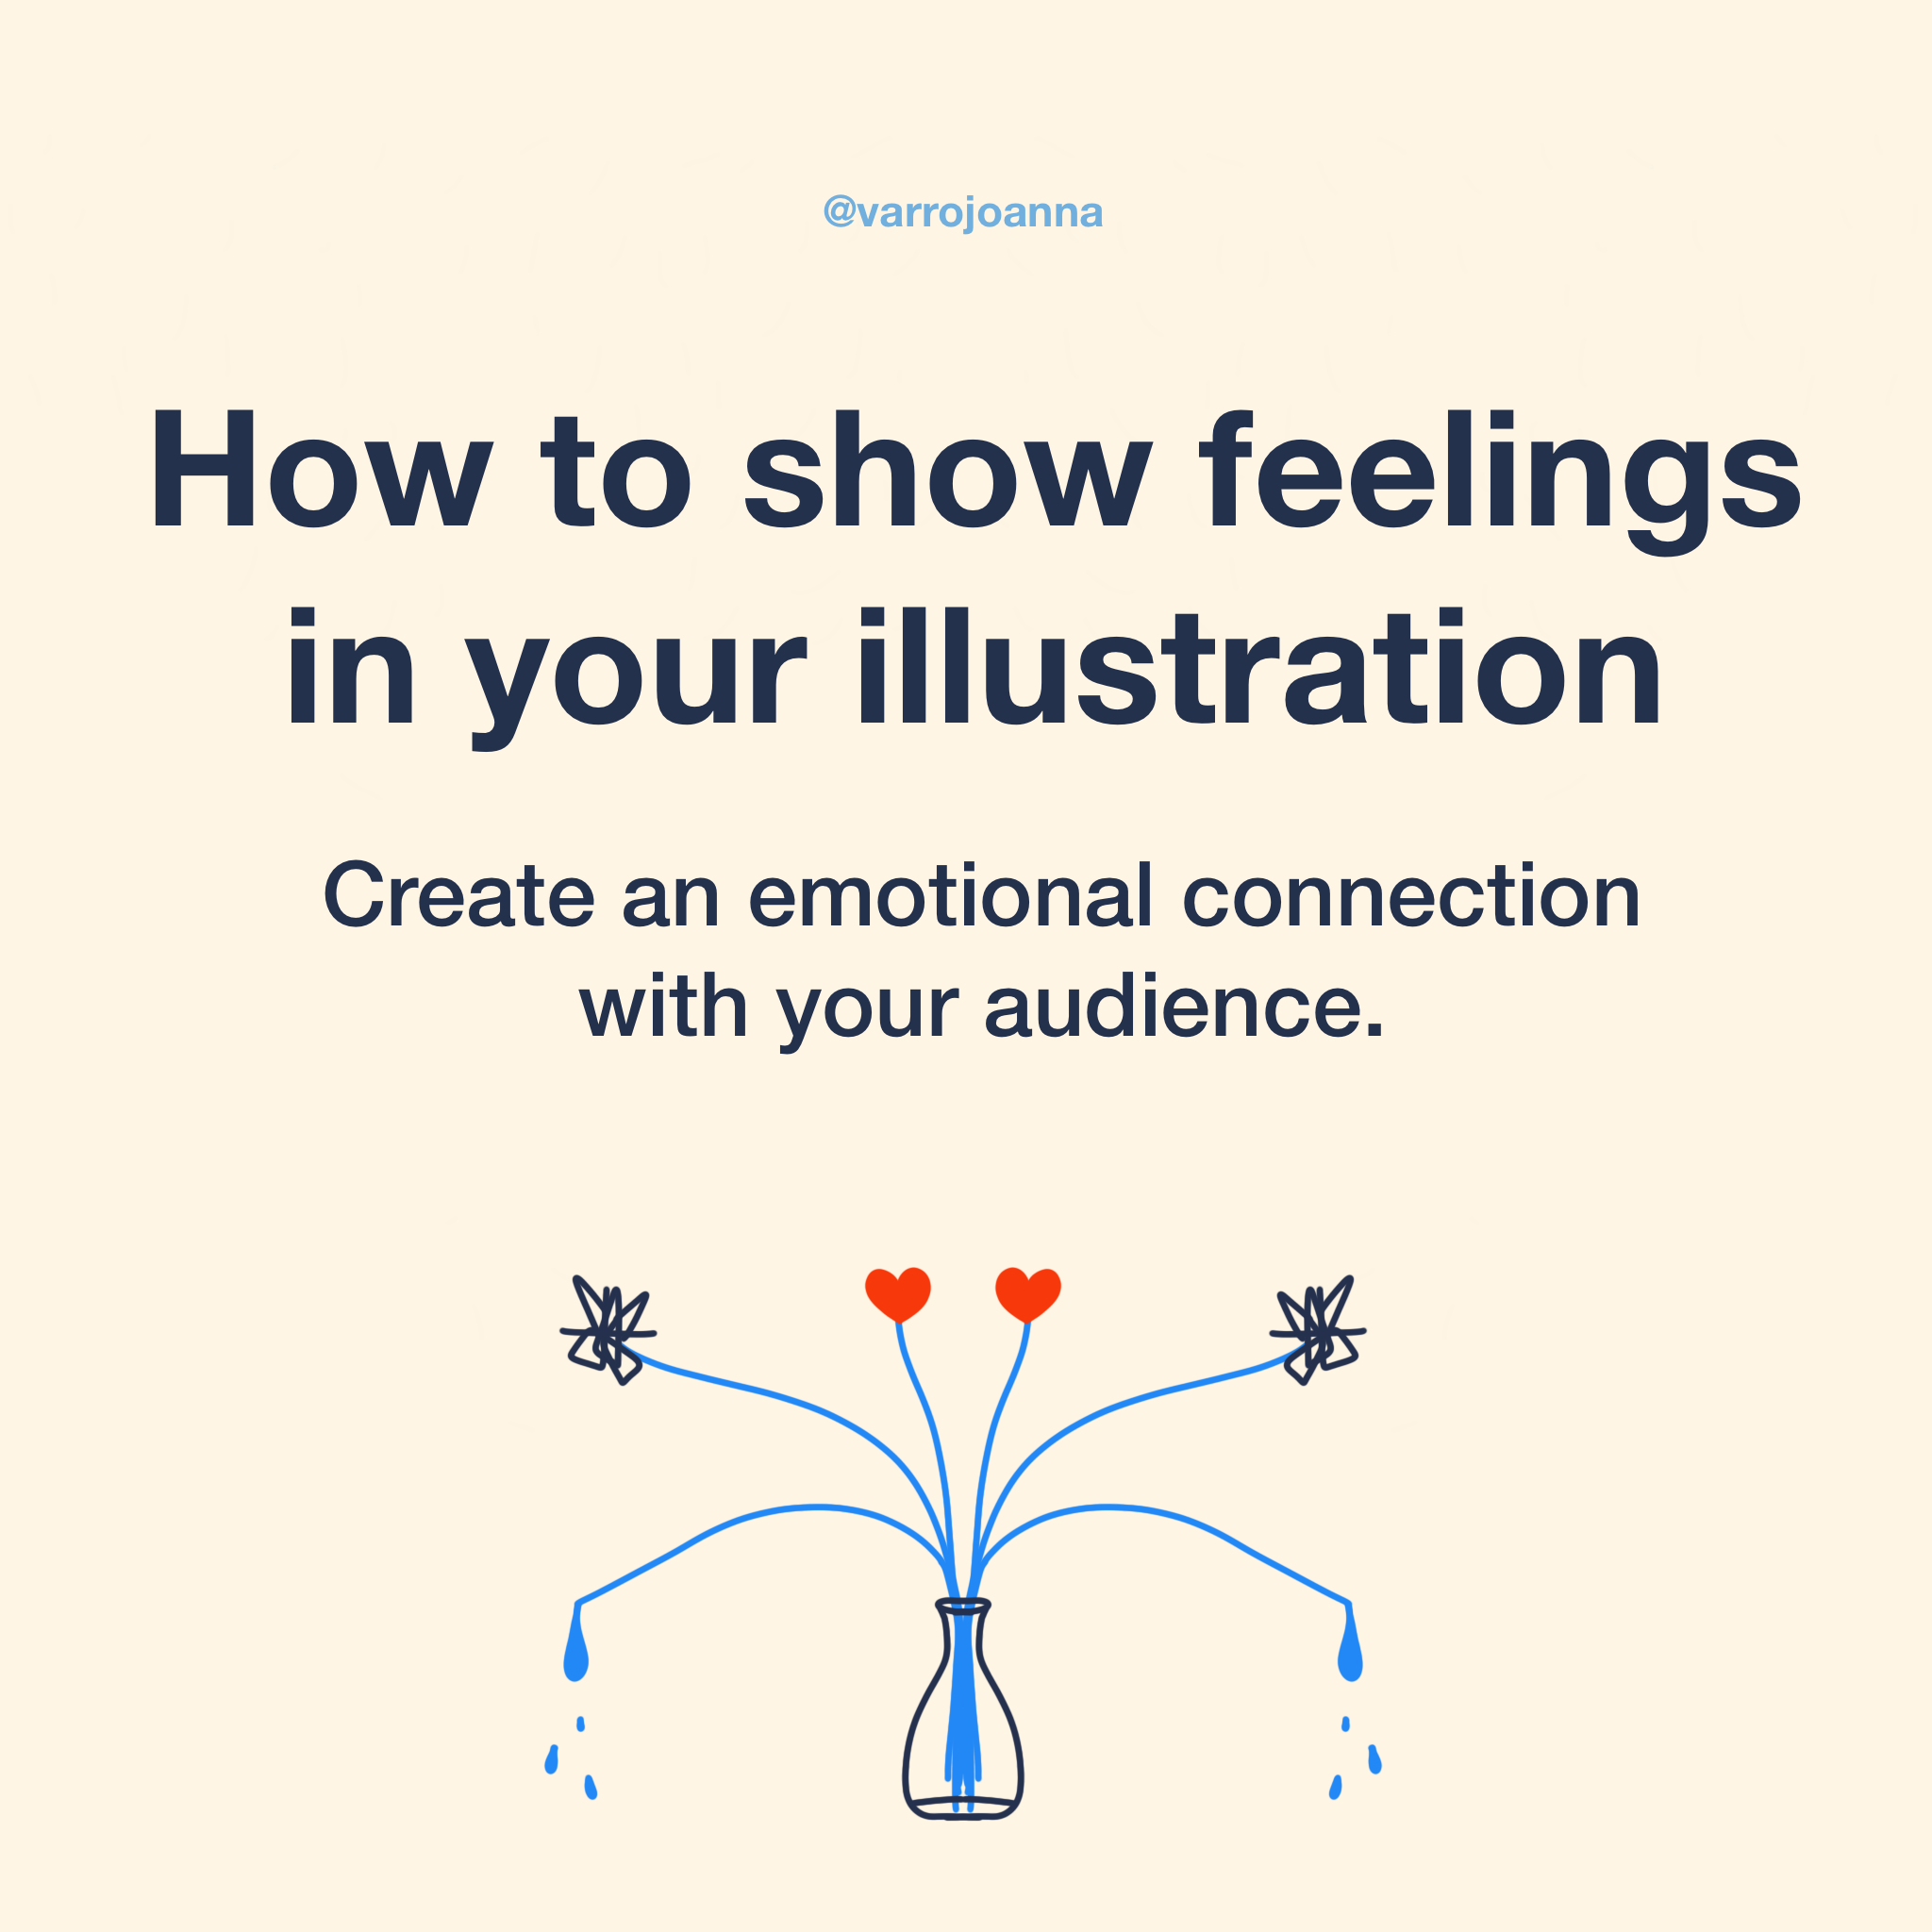 How to show feelings in your illustration